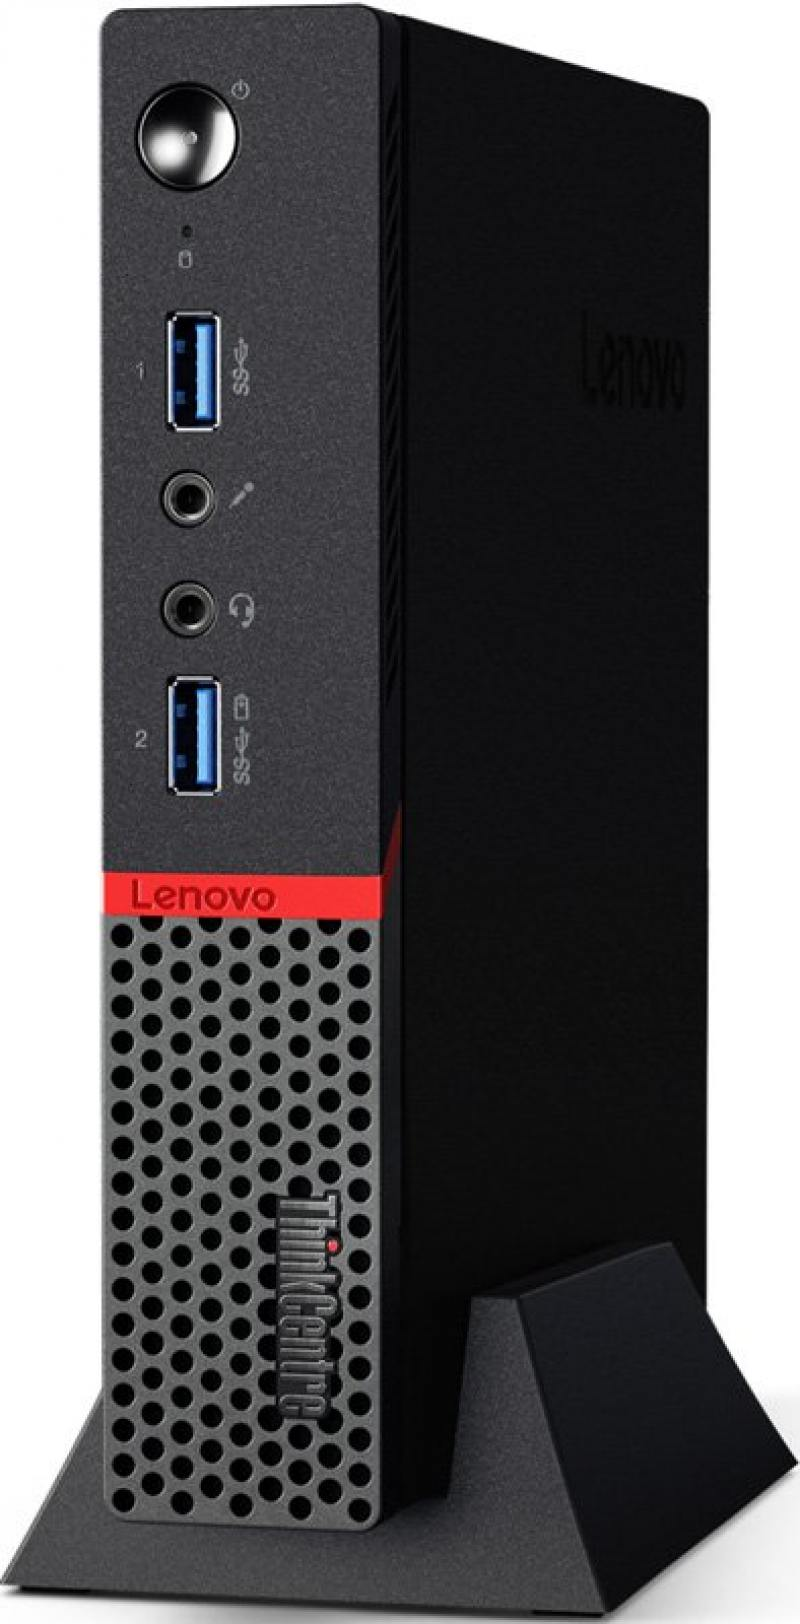 Неттоп Lenovo ThinkCentre M600 TINY slim 10G9001LRU Pentium J3710 (1.6)/4Gb/500Gb/Int:Intel HD/WiFi/BT/Vesa/4xUSB 3.0/VGA/DP/LAN/DOS Black